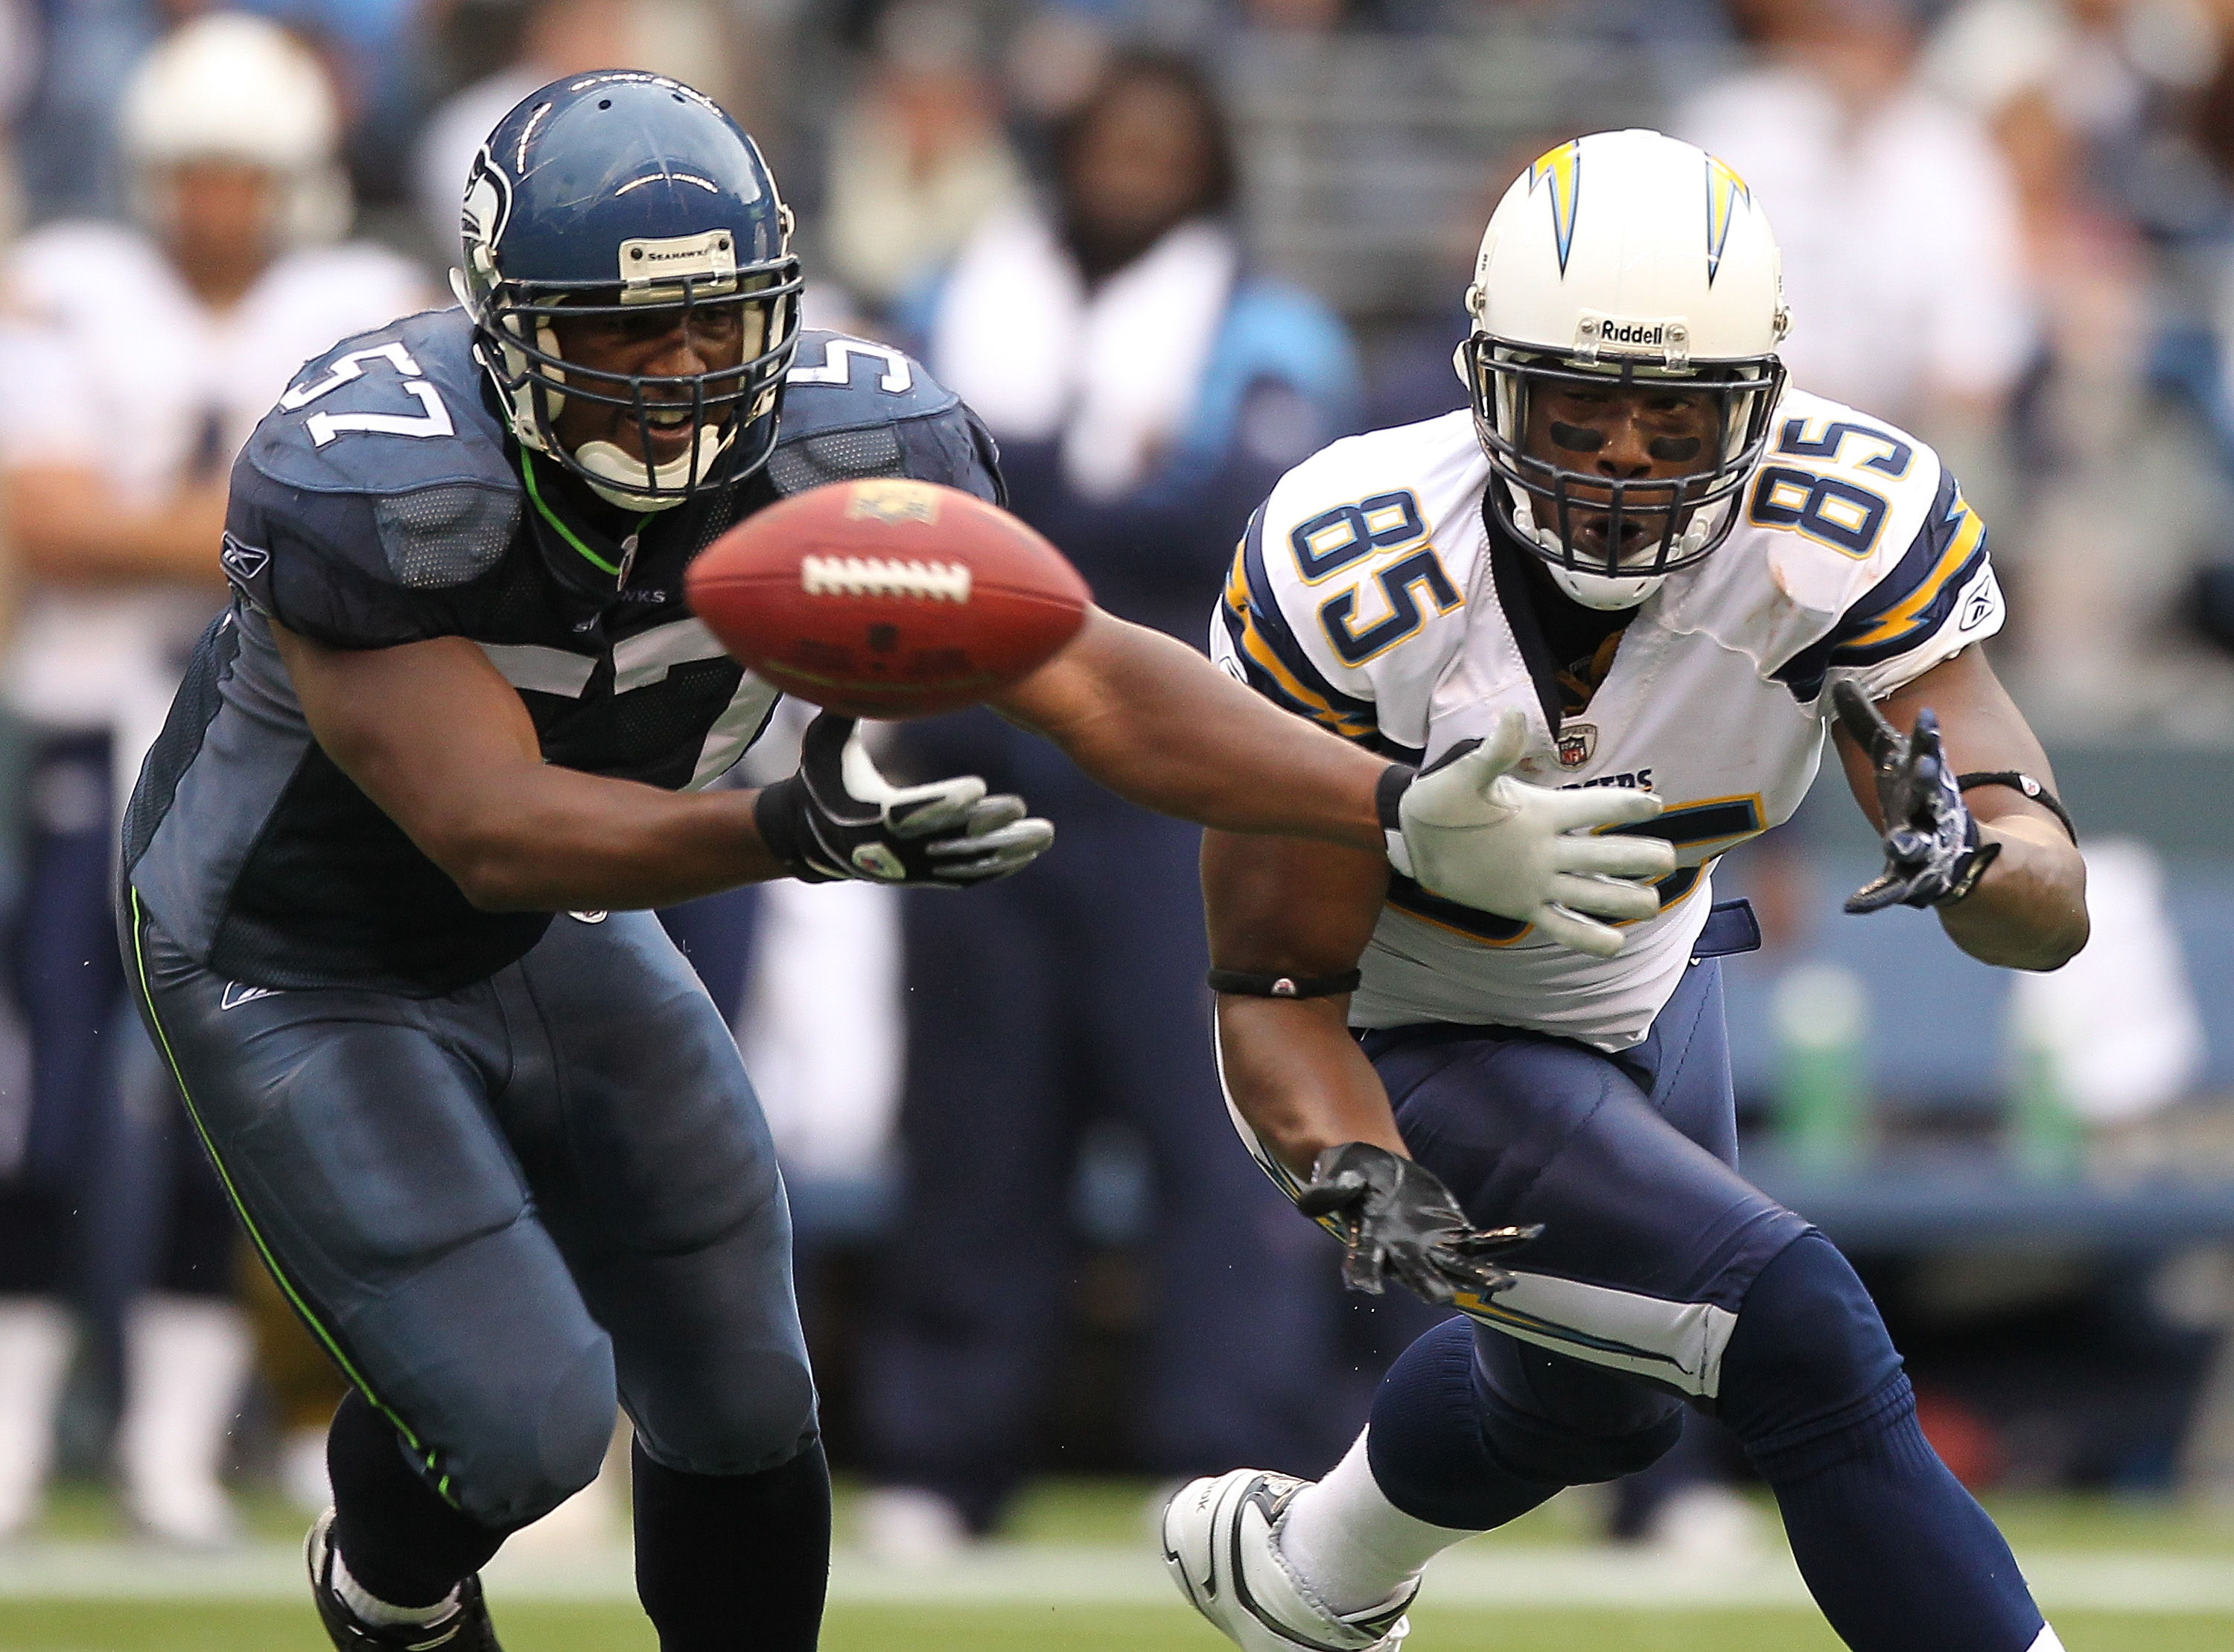 SEATTLE - SEPTEMBER 26:  Tight end Antonio Gates #85 of the San Diego Chargers attempts to catch a pass that is batted away by David Hawthorne #57 of the Seattle Seahawks at Qwest Field on September 26, 2010 in Seattle, Washington. The pass was then inter